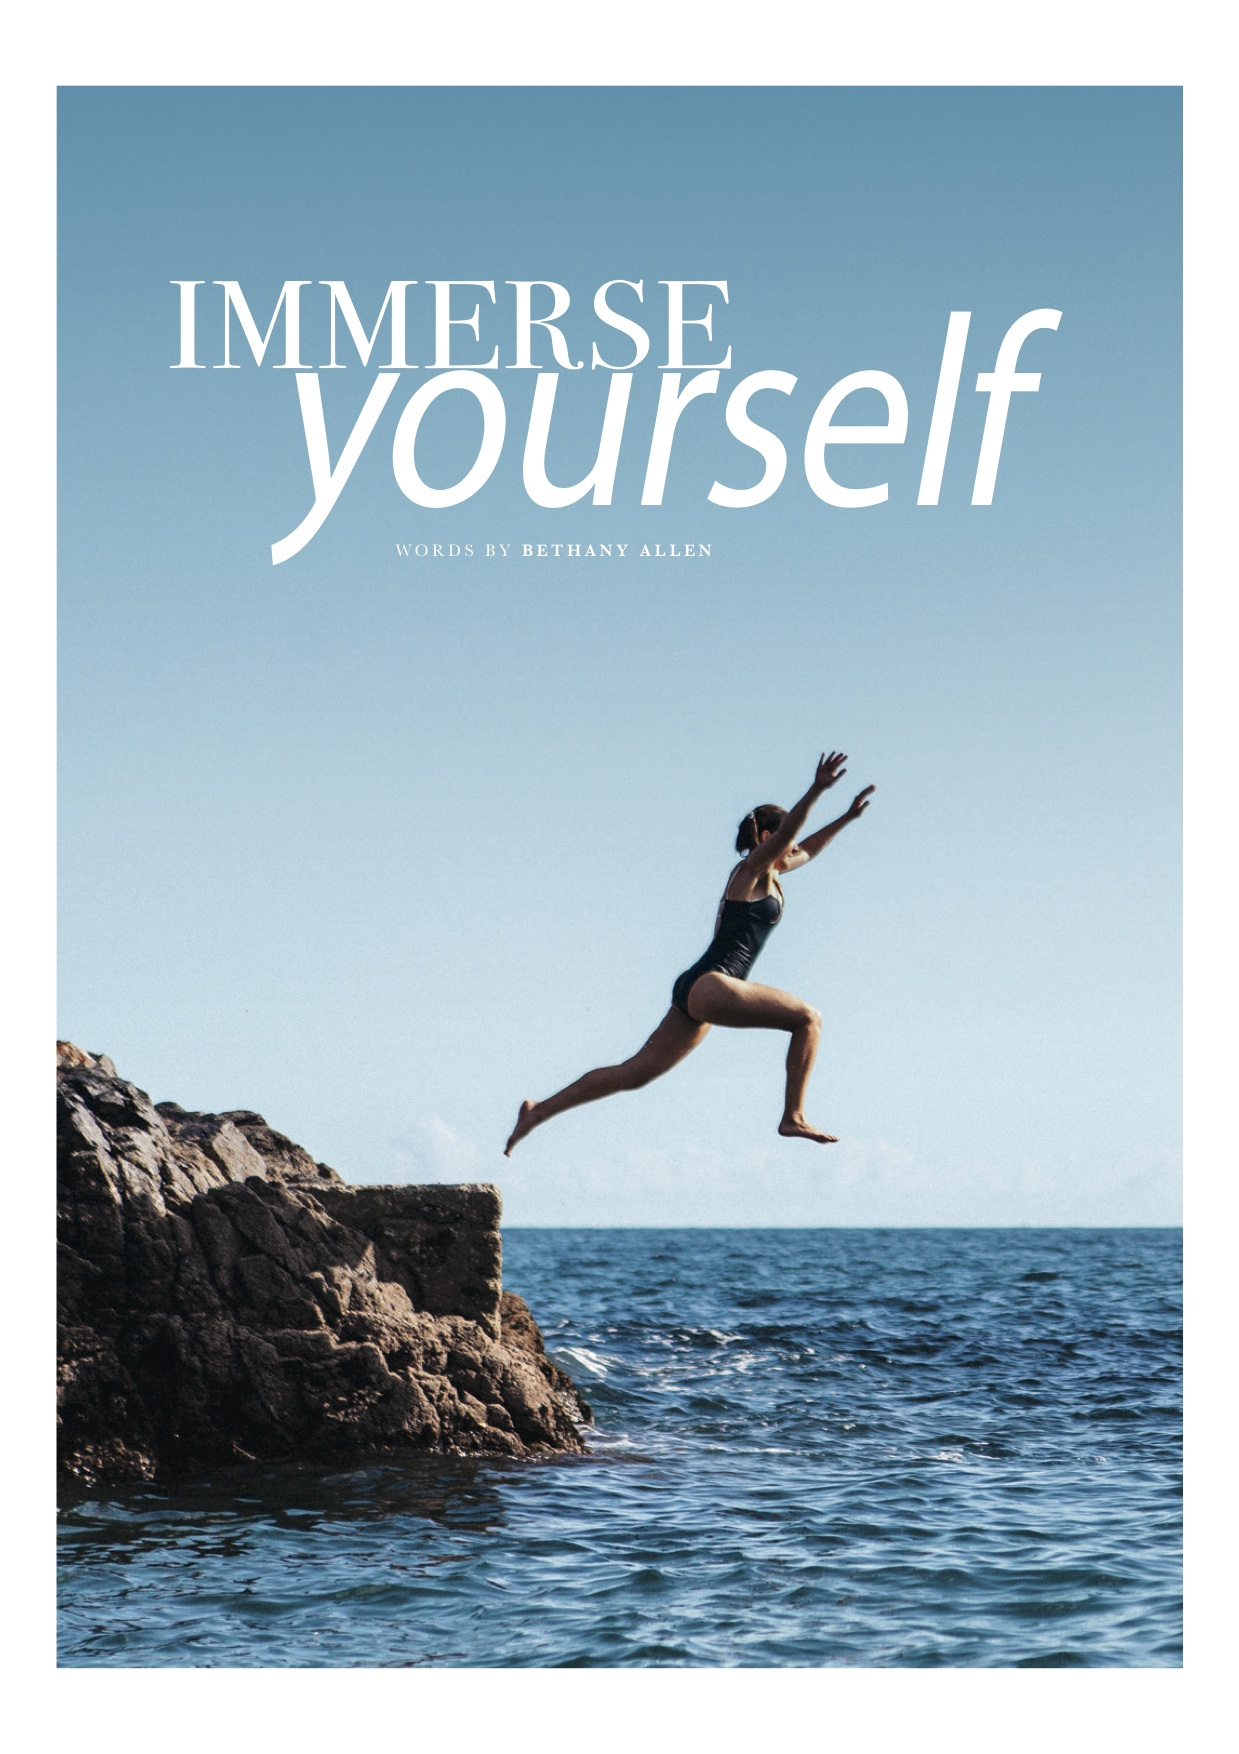 Immerse yourself - For Drift Magazine